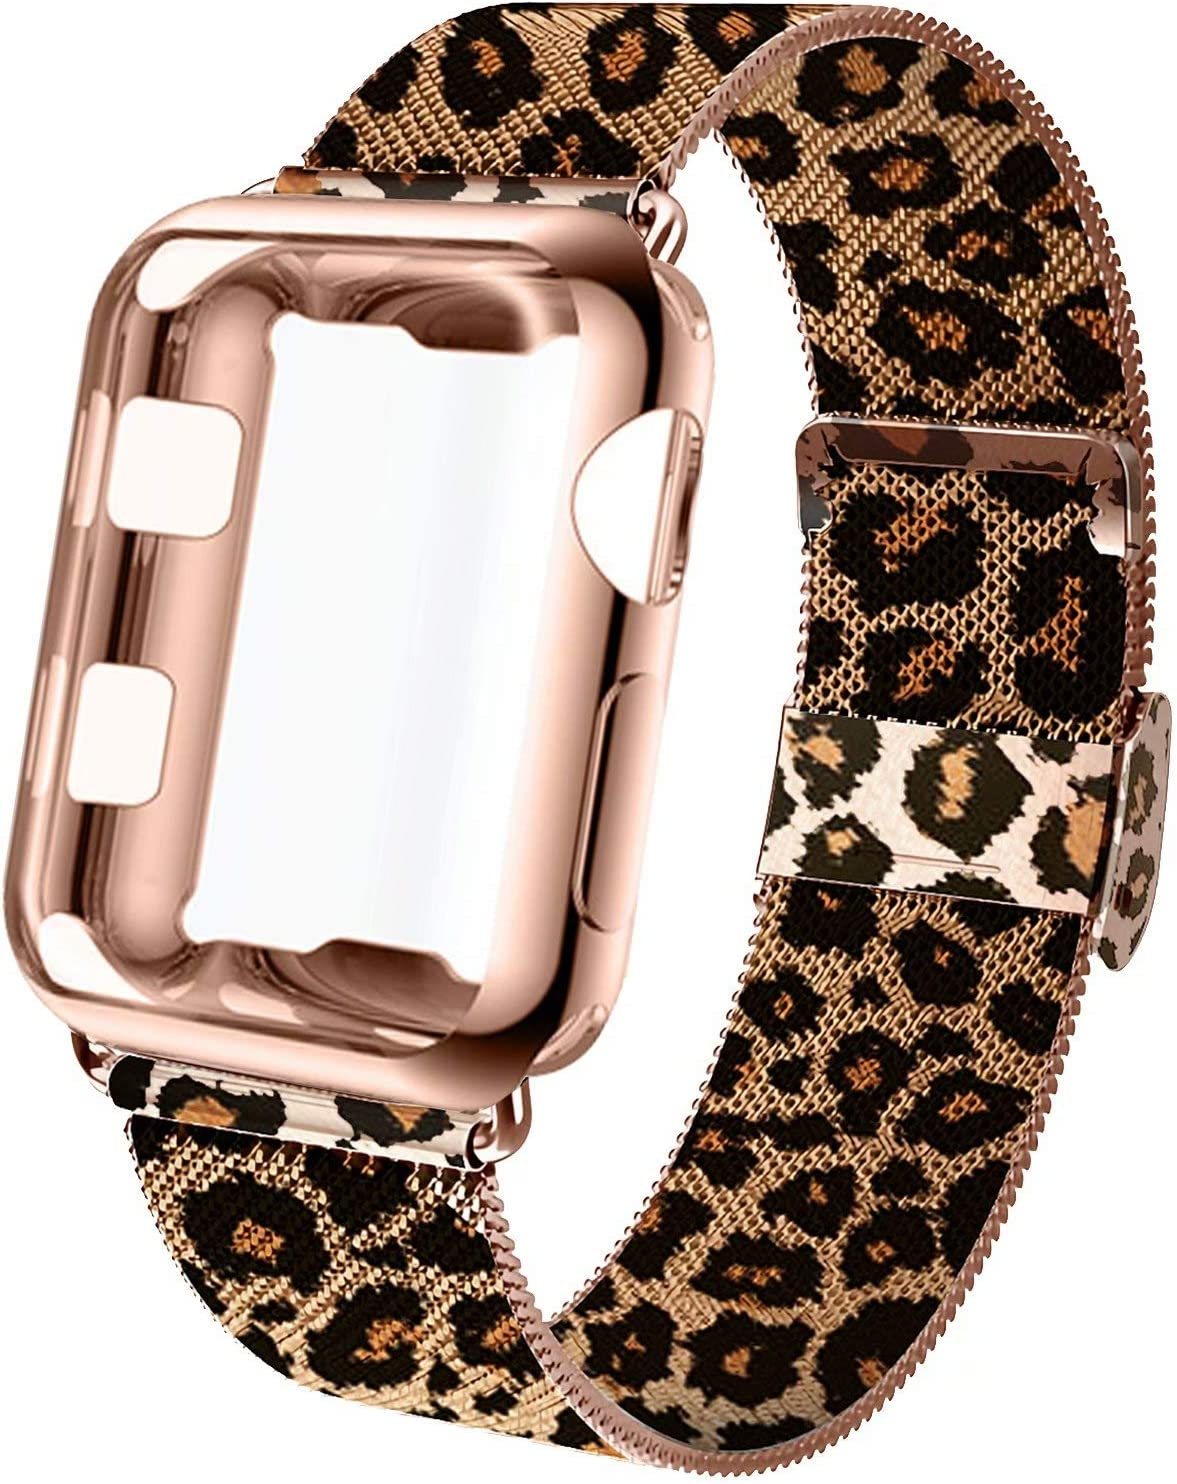 GBPOOT Compatible for Apple Watch Band 38mm 40mm 42mm 44mm with Screen Protector Case, Sports Wristband Strap Replacement Band with Protective Case for Iwatch Series 6/SE/5/4/3/2/1,38mm,Leopard